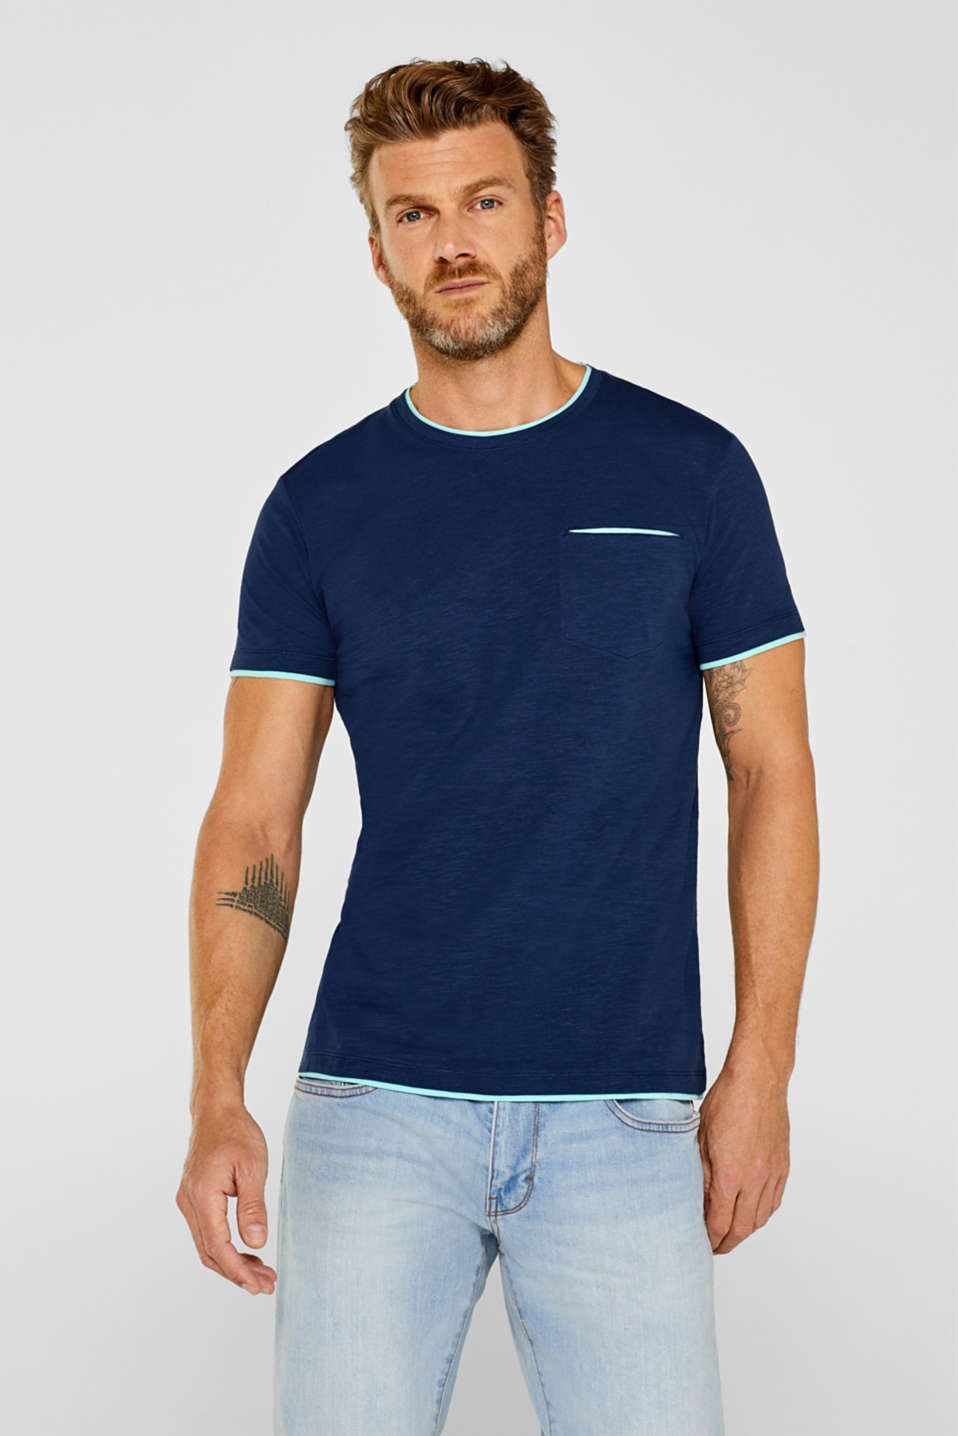 Esprit - Layered look jersey T-shirt, 100% cotton